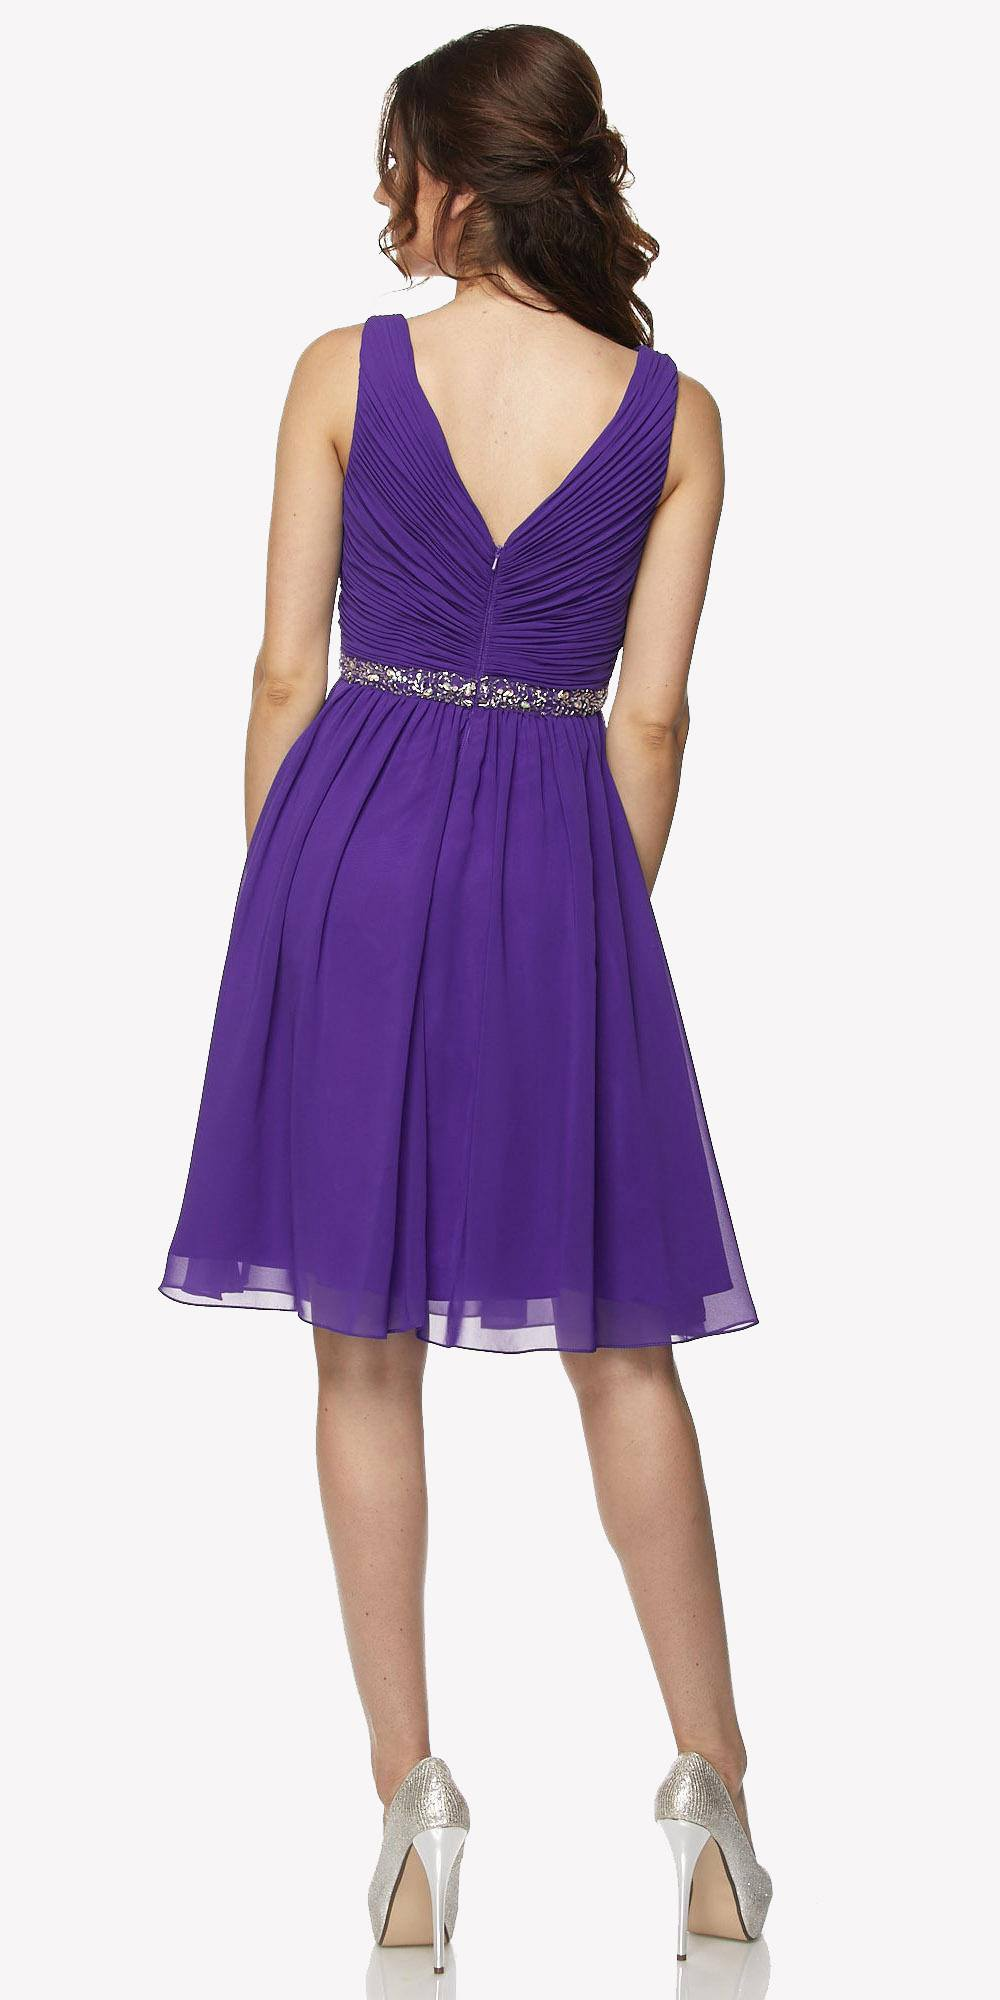 Juliet 786 Ruched V-Neck Cocktail Dress Embellished Waist Purple